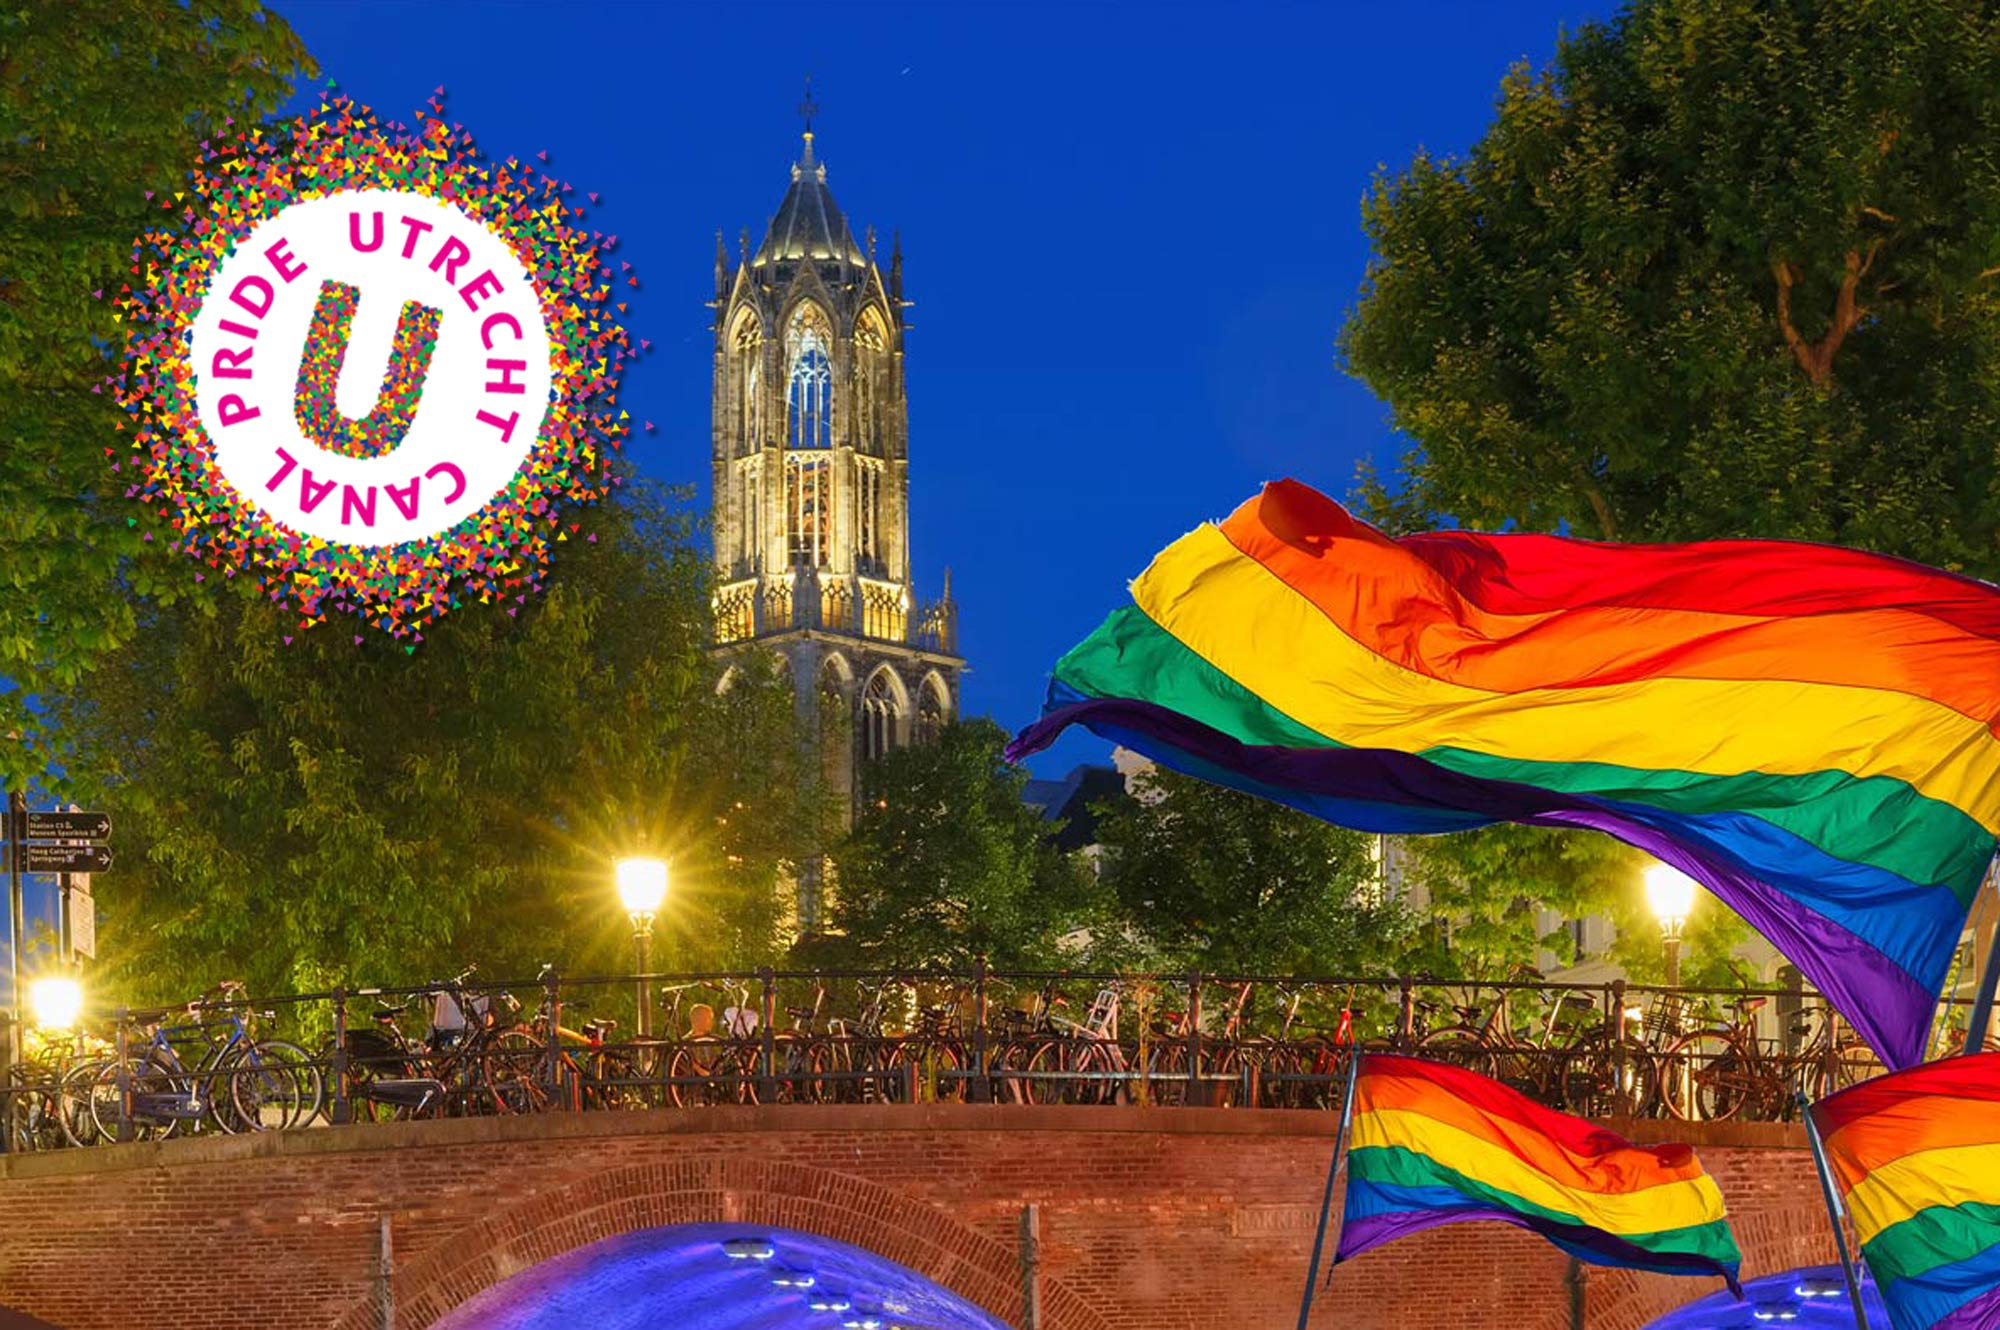 First Utrecht Canal Gay Pride 2017 The Netherlands | Coupleofmen.com